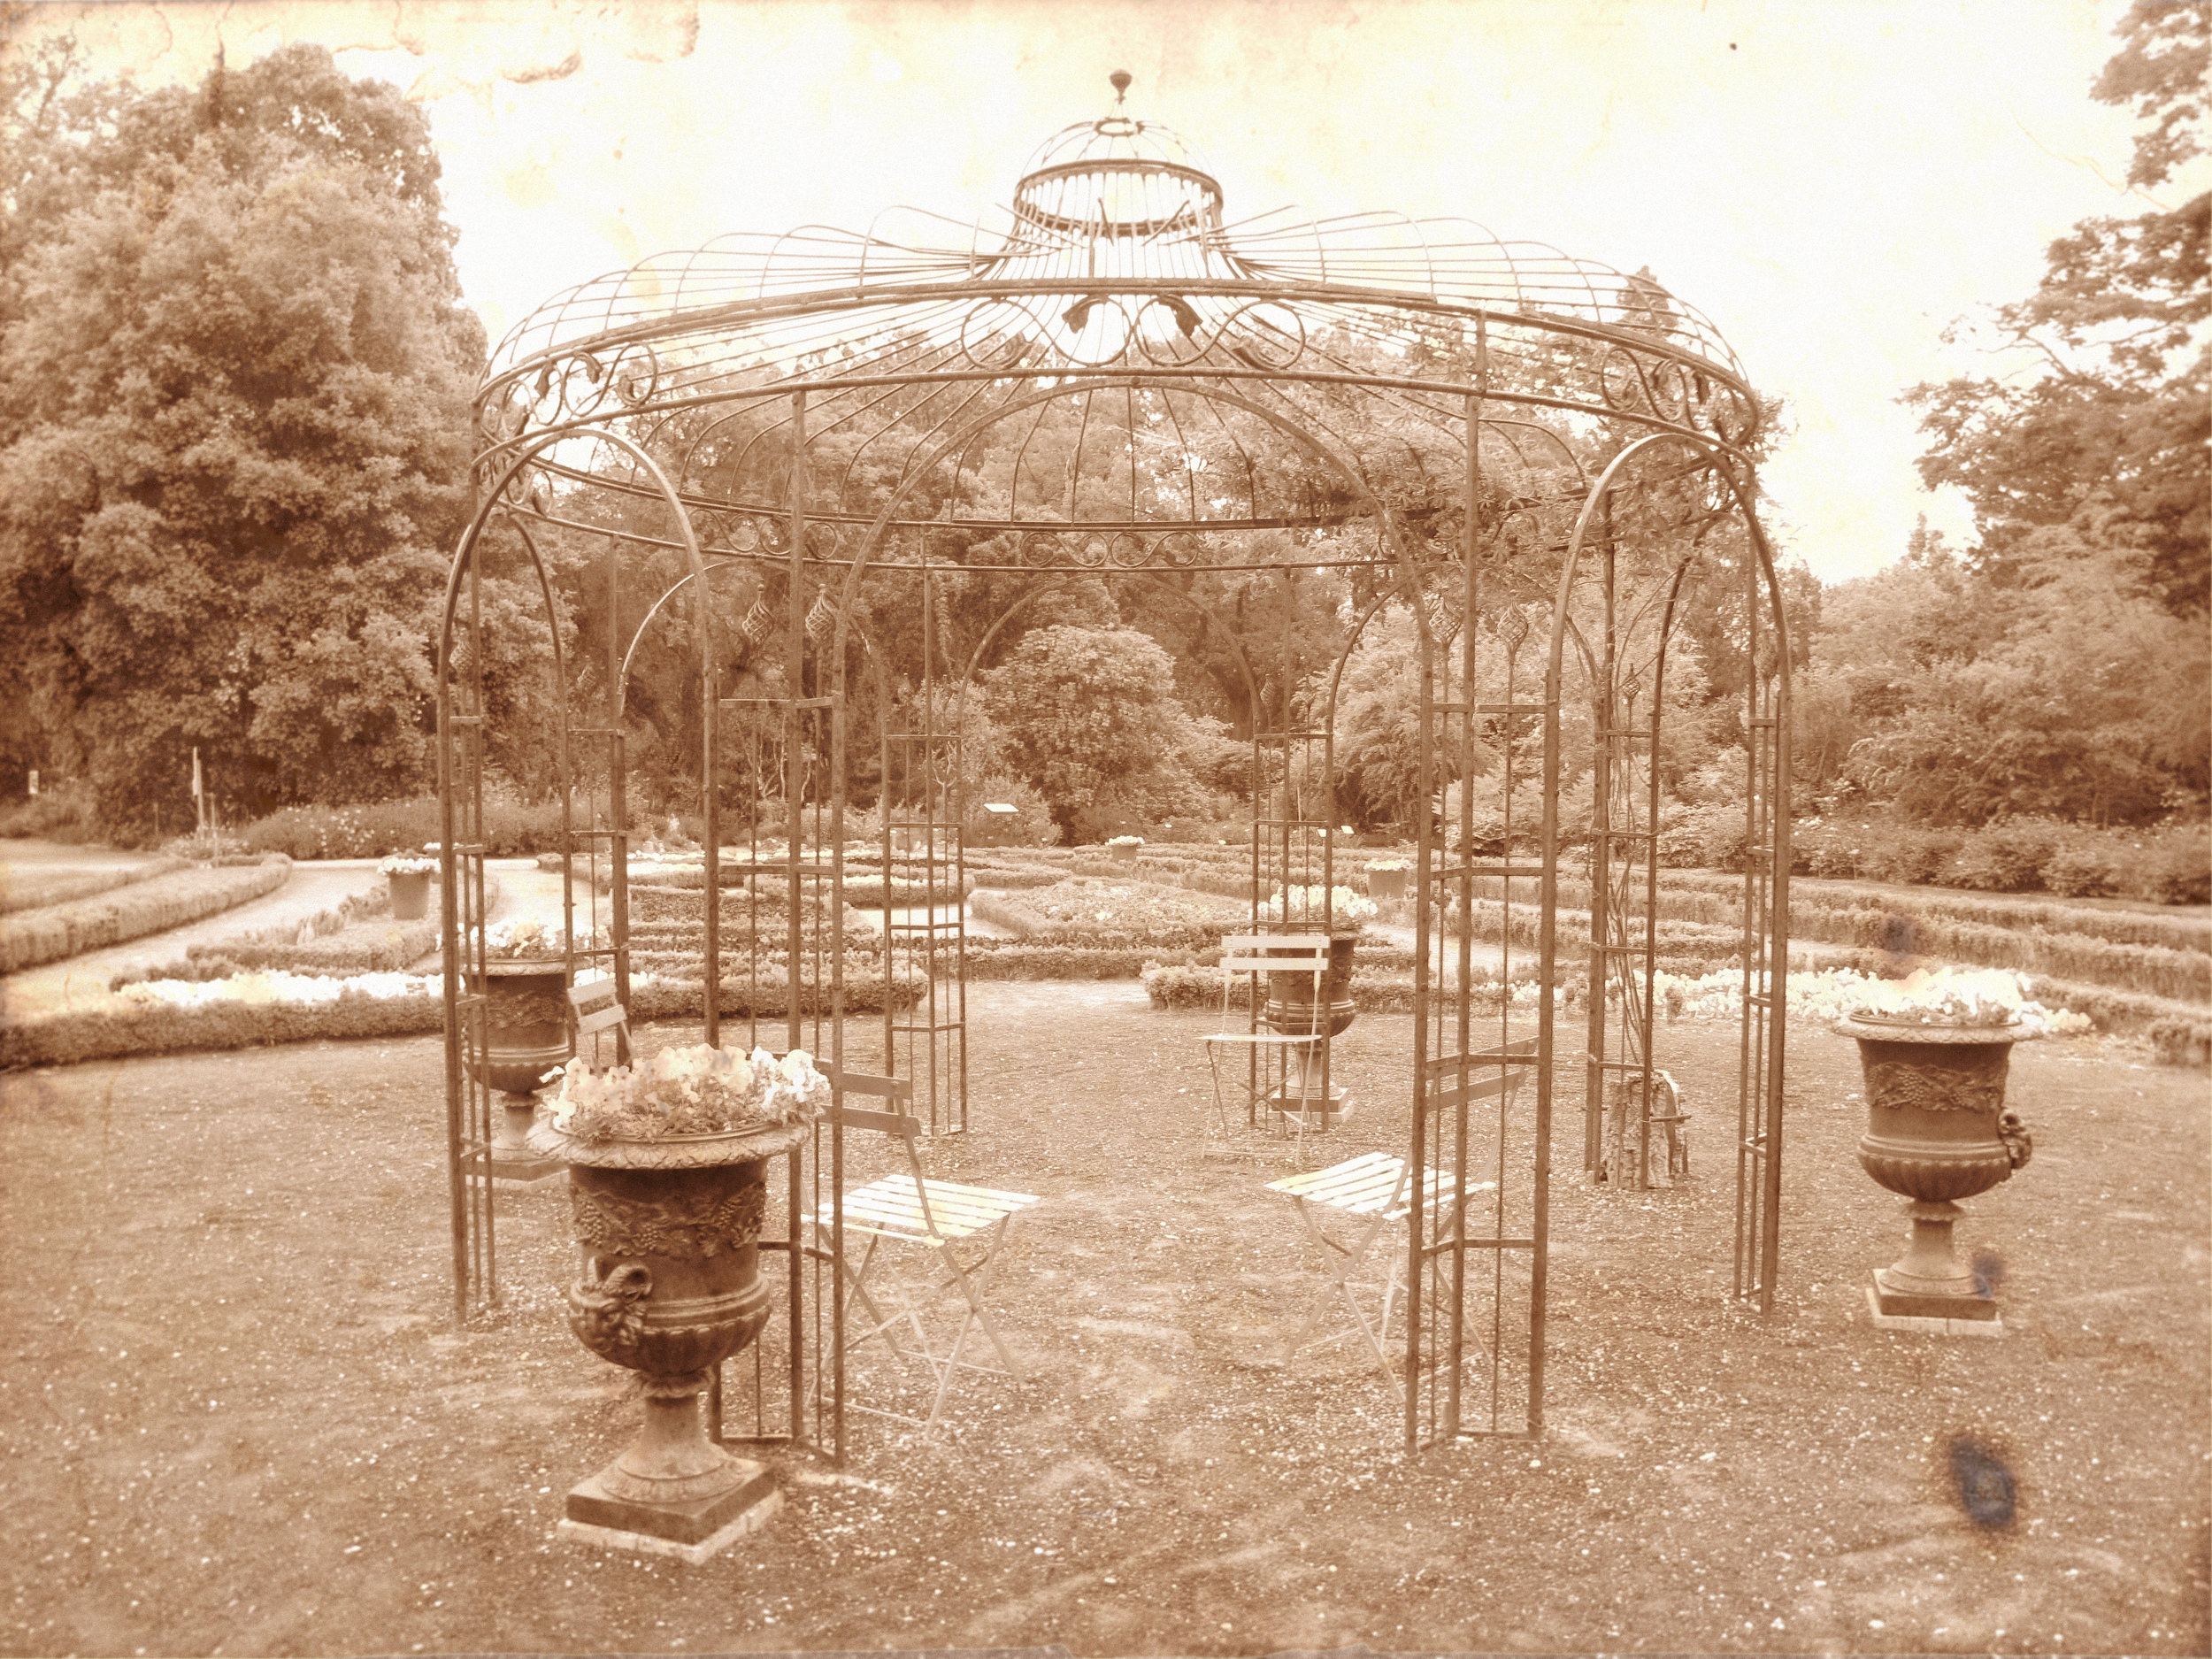 Rose trellis pagoda in old Victorian style photo